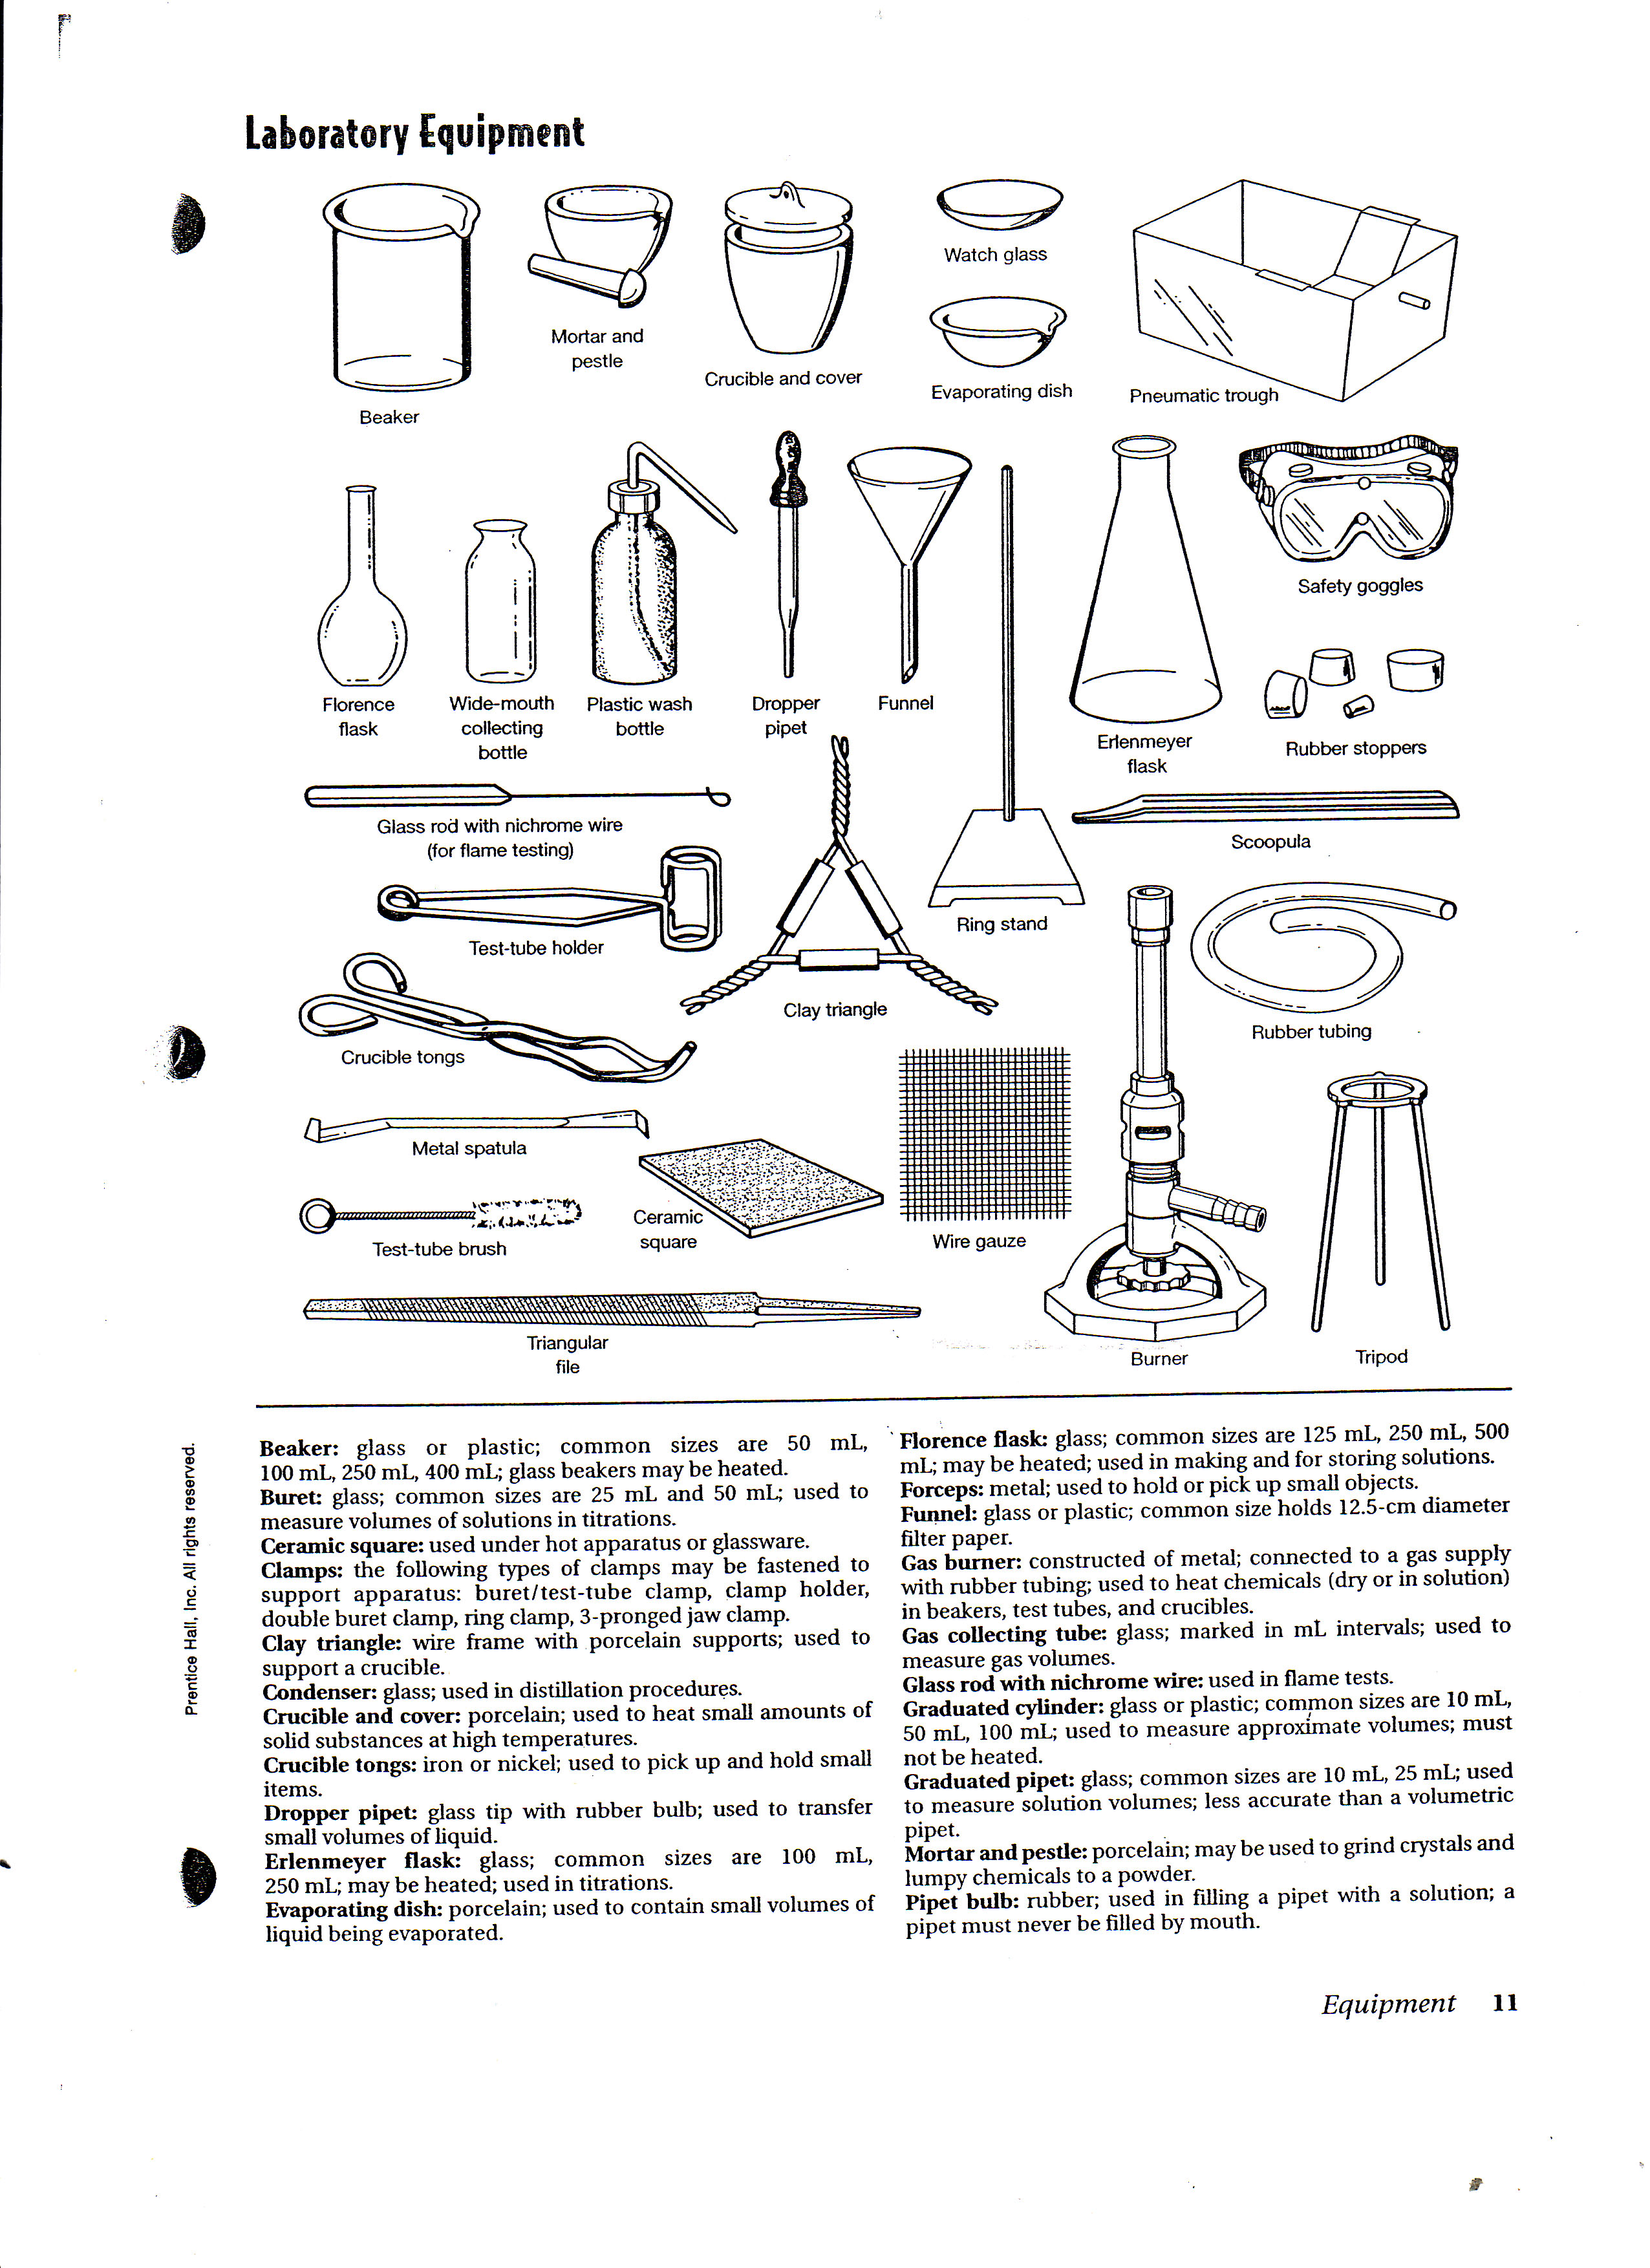 Lab safety symbols gallery symbol and sign ideas lab equipment and safety symbols tiffany tam view this photo view this photo buycottarizona buycottarizona